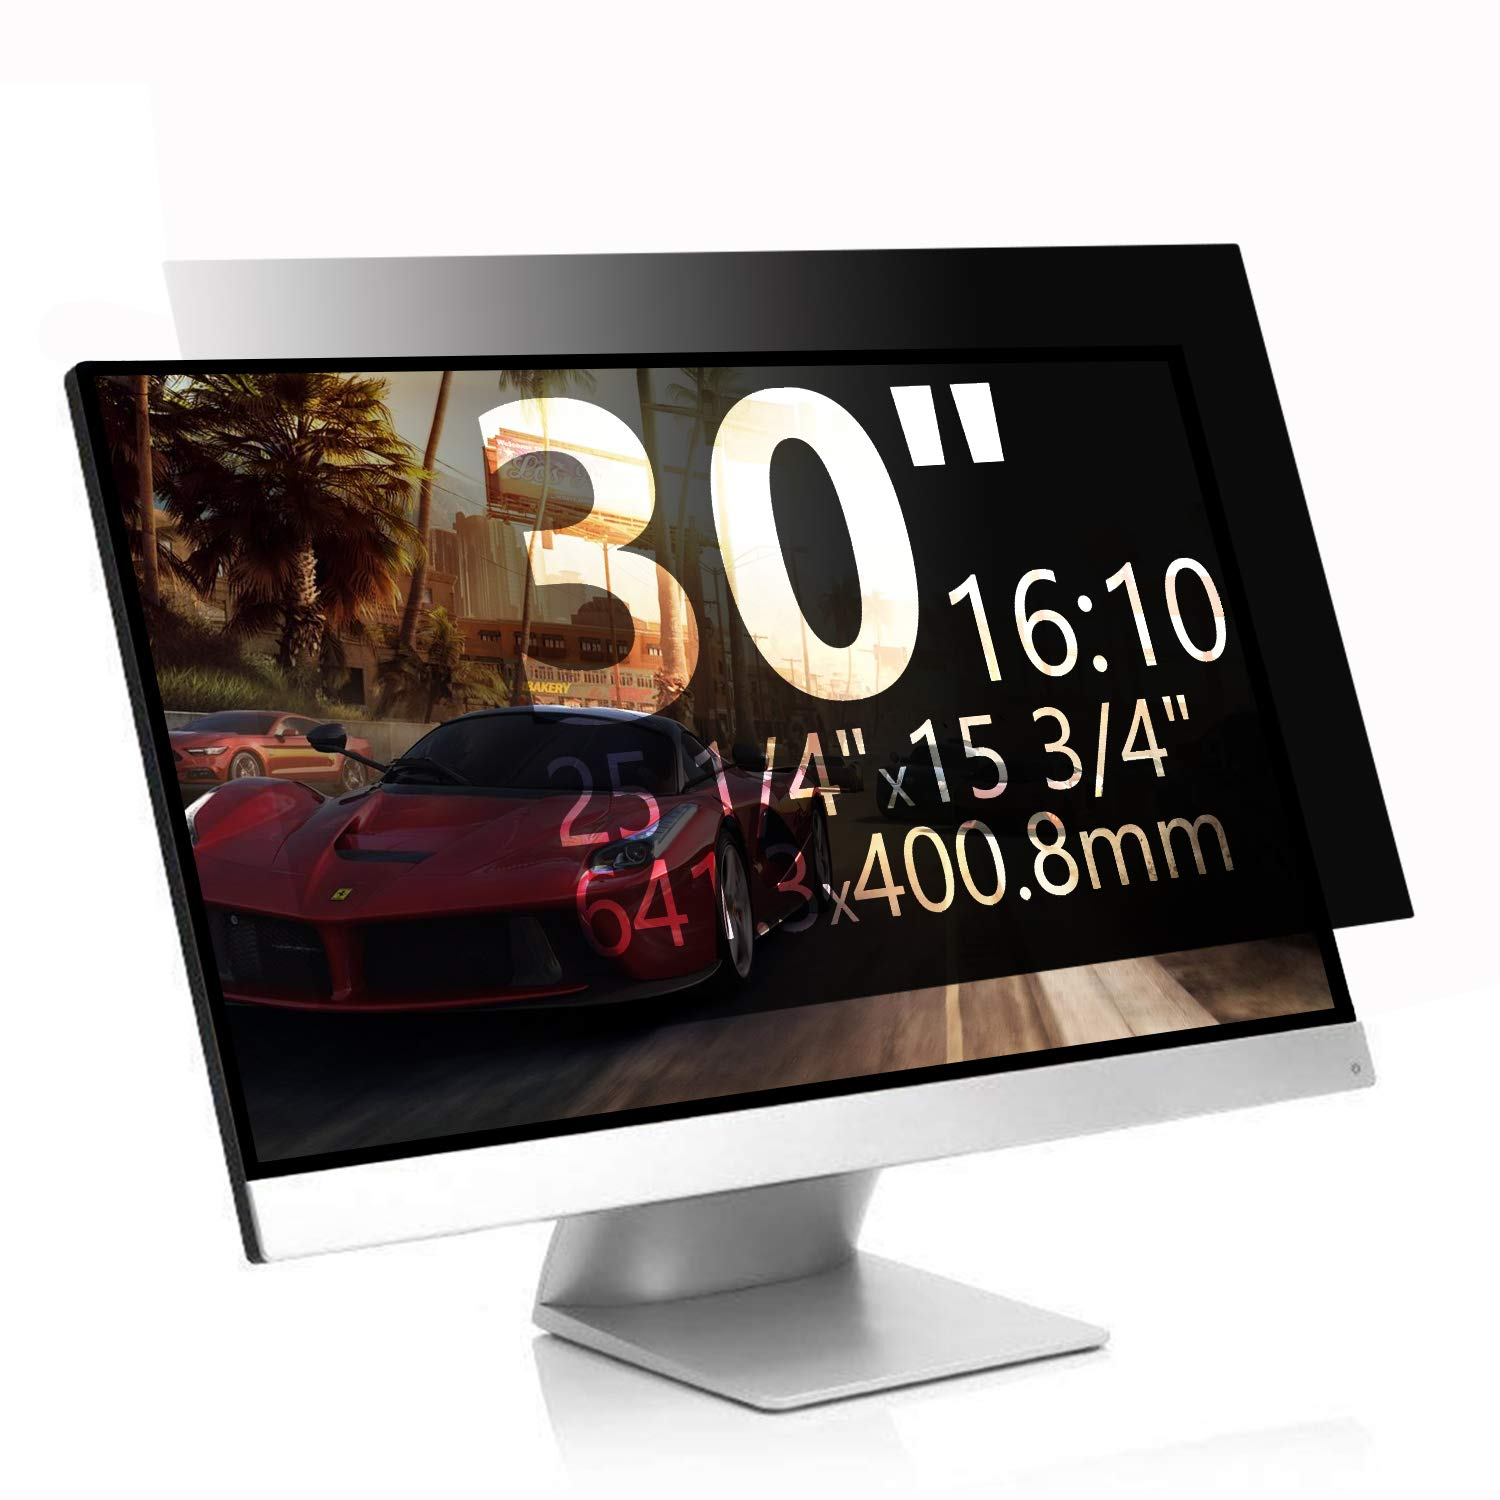 MAYAMANG Privacy Screen Protector 30 Inch 16:10 Monitor, Privacy Filter for Widescreen PC Computer, Monitor Privacy Screen 30 Inch, Anti-Glare Computer Privacy Screen, Monitor Protector